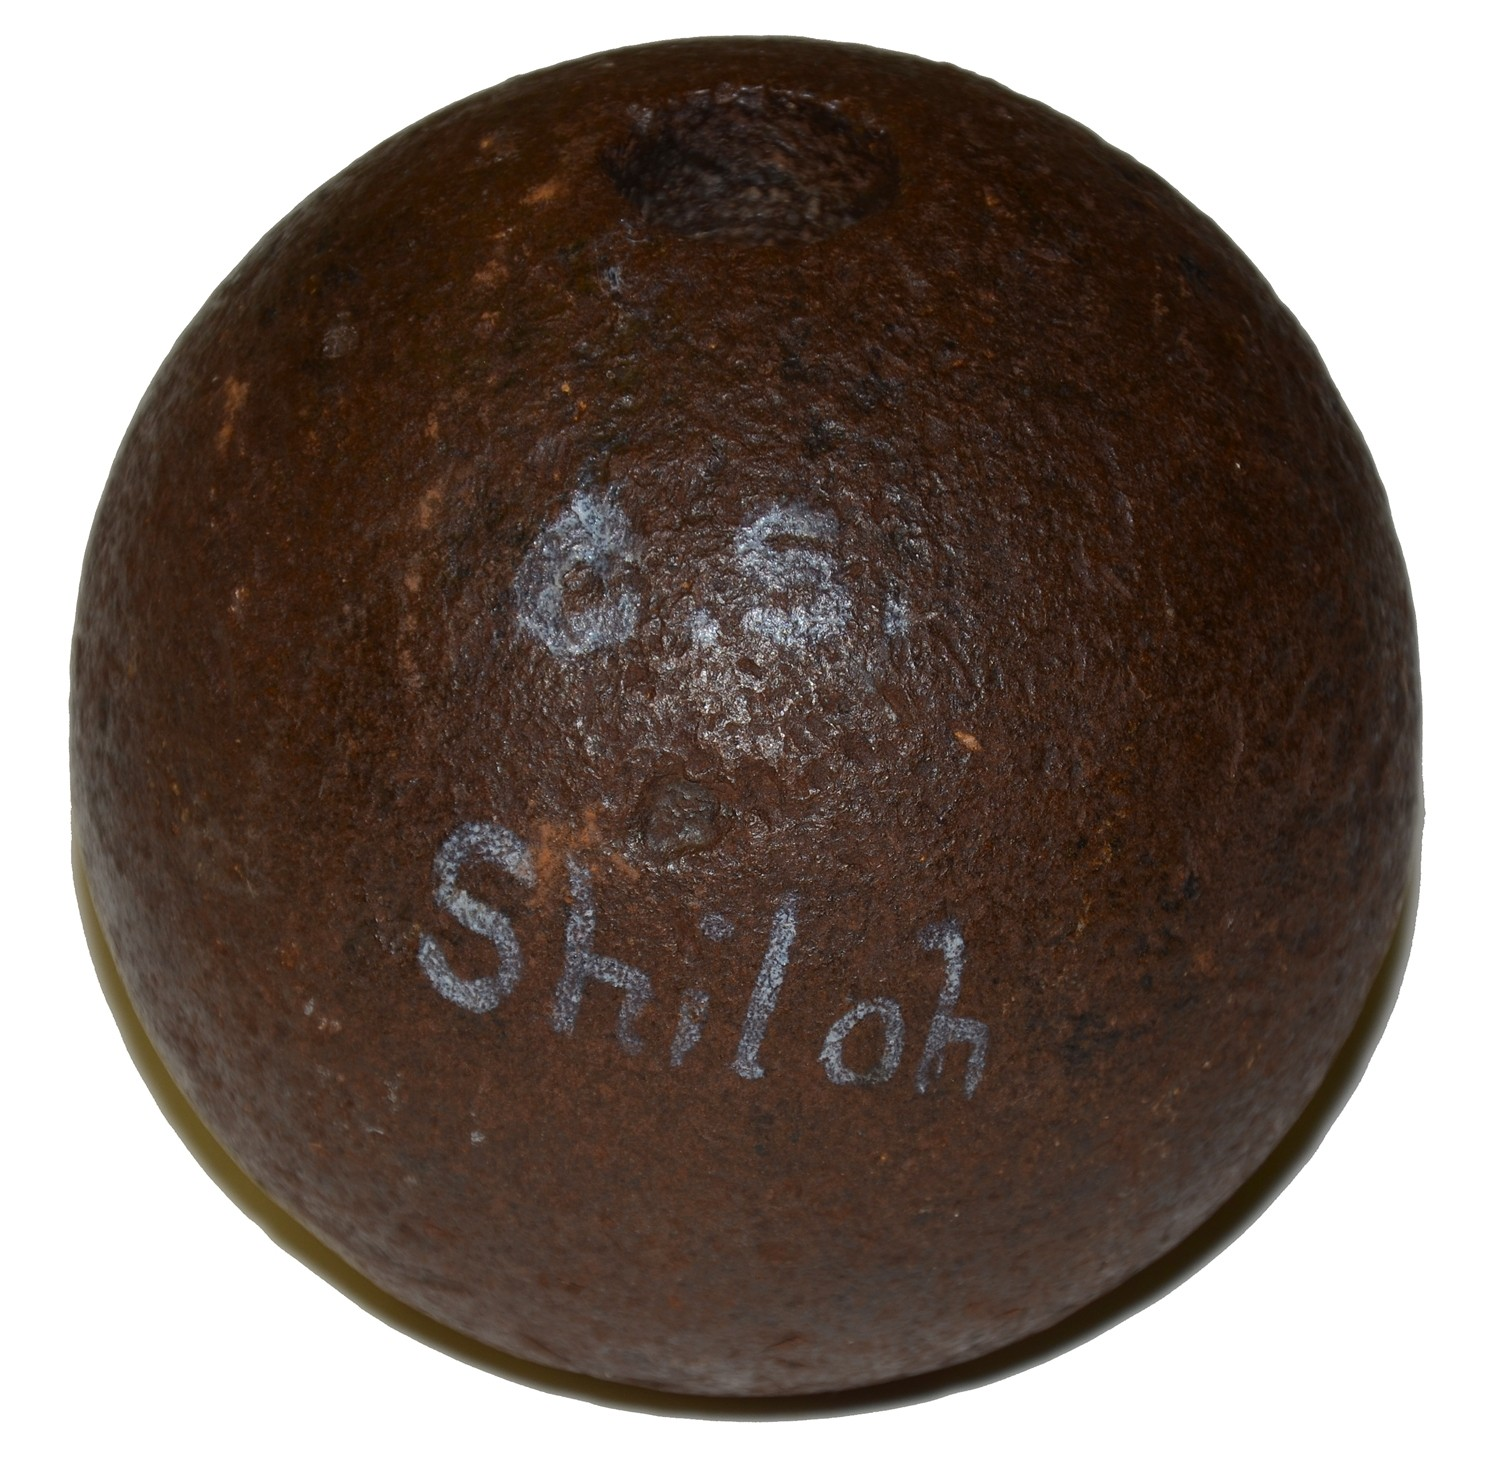 CS 4.52 INCH 12 POUND SPHERICAL SHELL, RECOVERED AT SHILOH